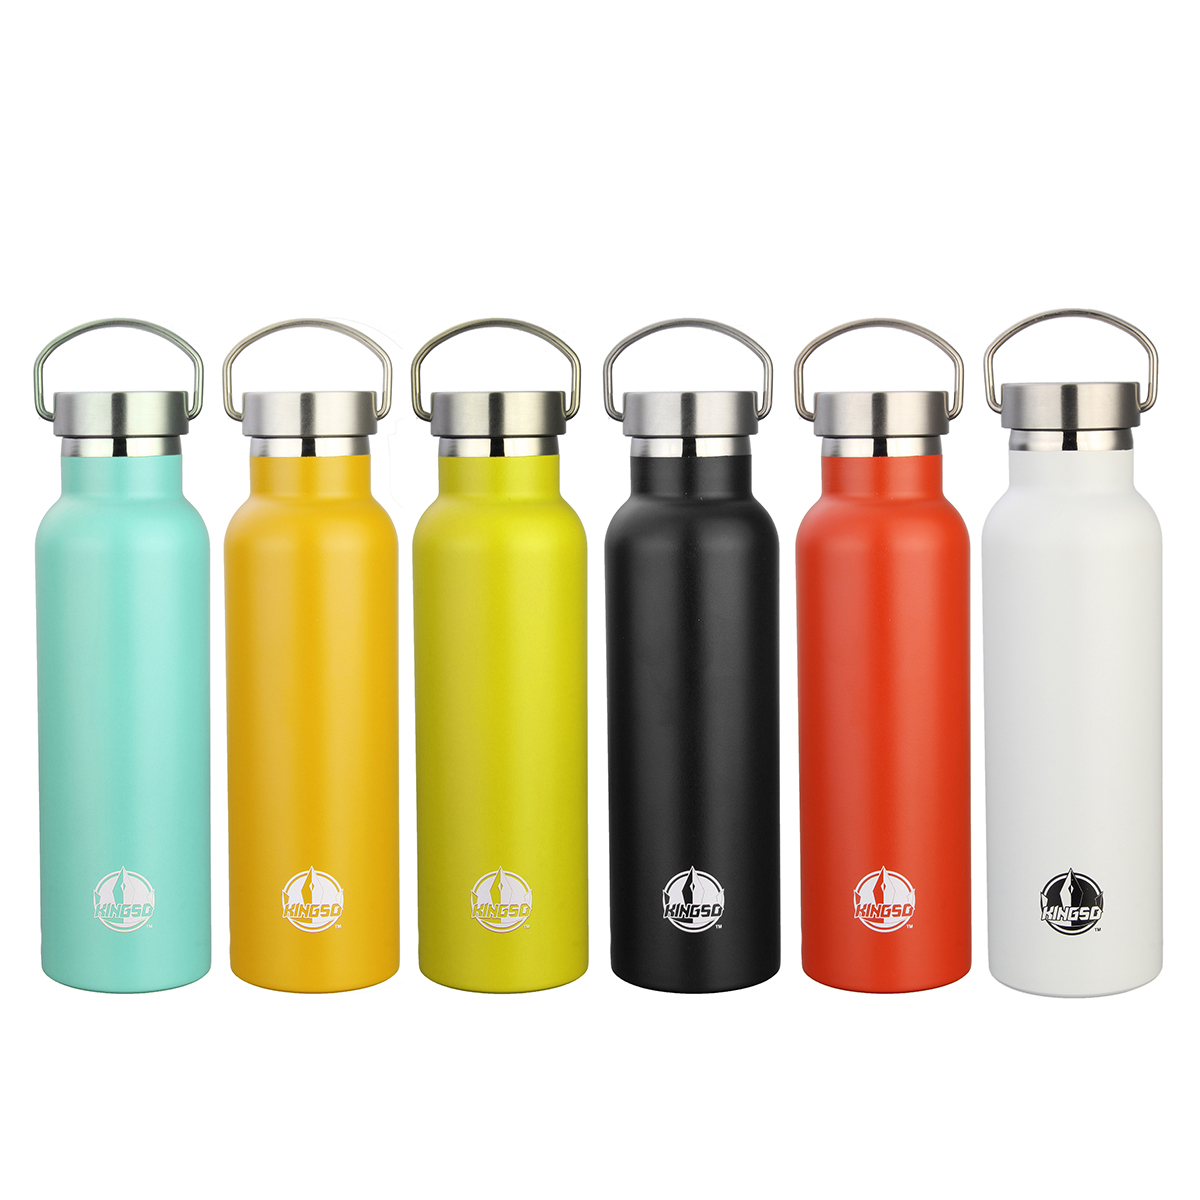 Vacuum Water Bottle,KINGSO 600ml Stainless Steel Insulation Water Bottle with Metal buckle For Outdoor Sports, Work Trip, Home,Camping Hiking